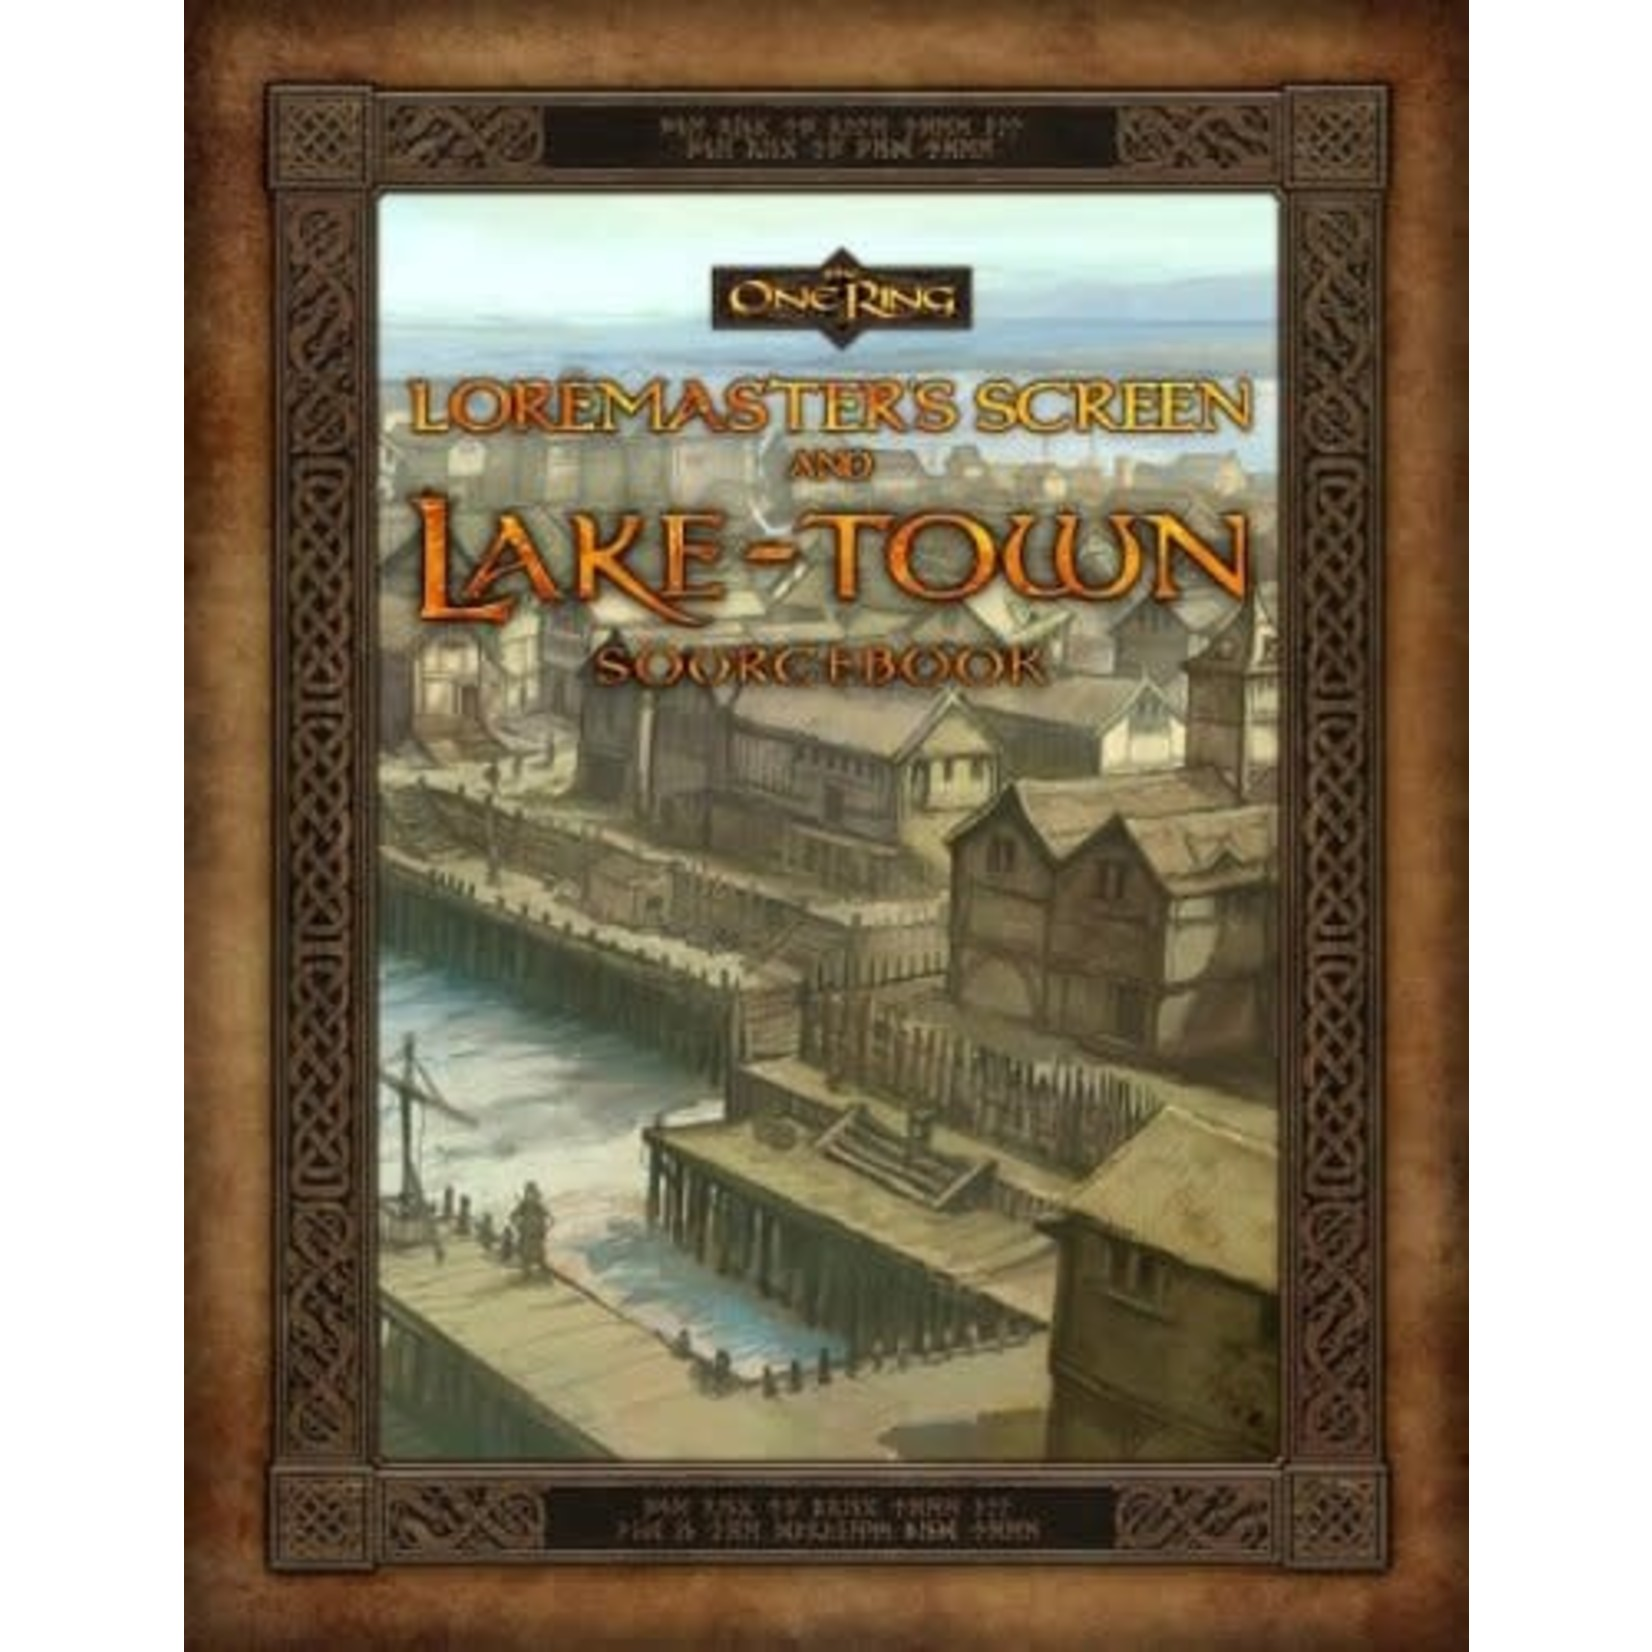 The One Ring RPG LM Screen & Laketown Sourcebook